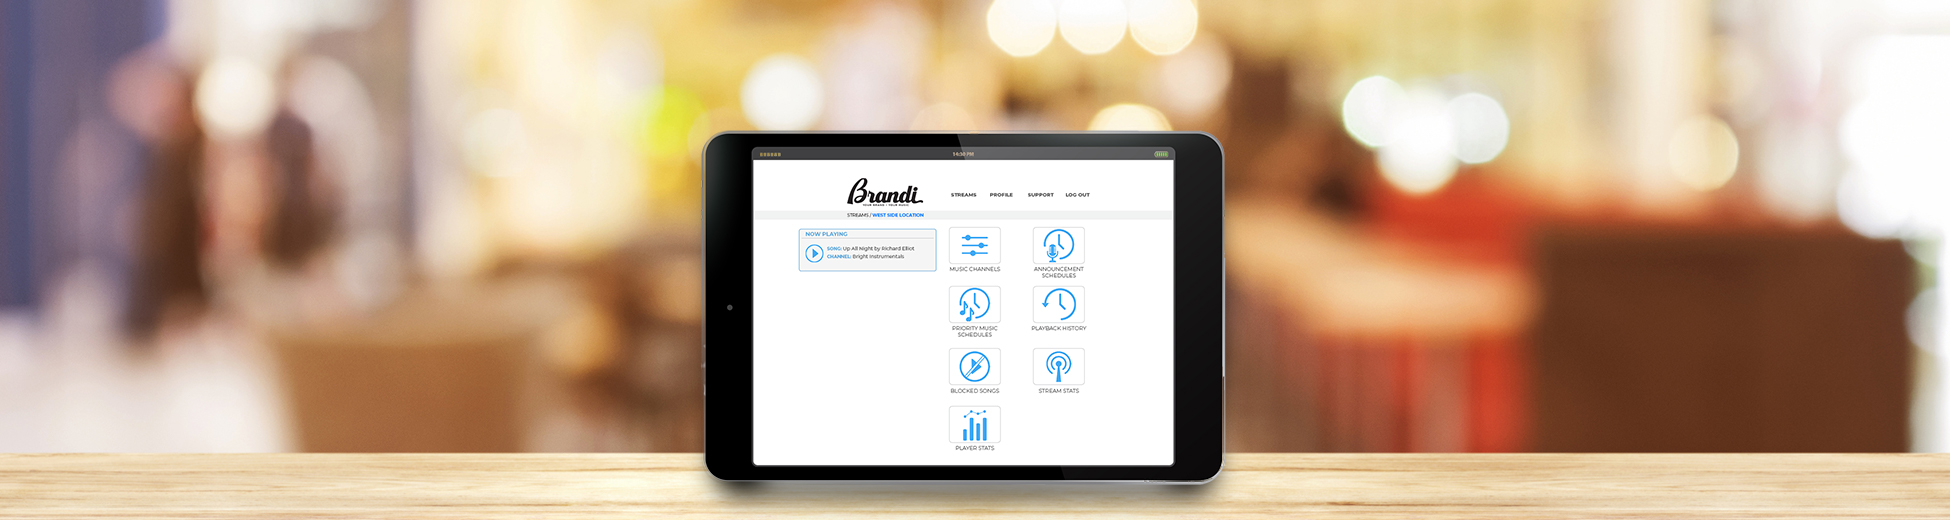 Business Music Lilcensing through Brandi Music - web app